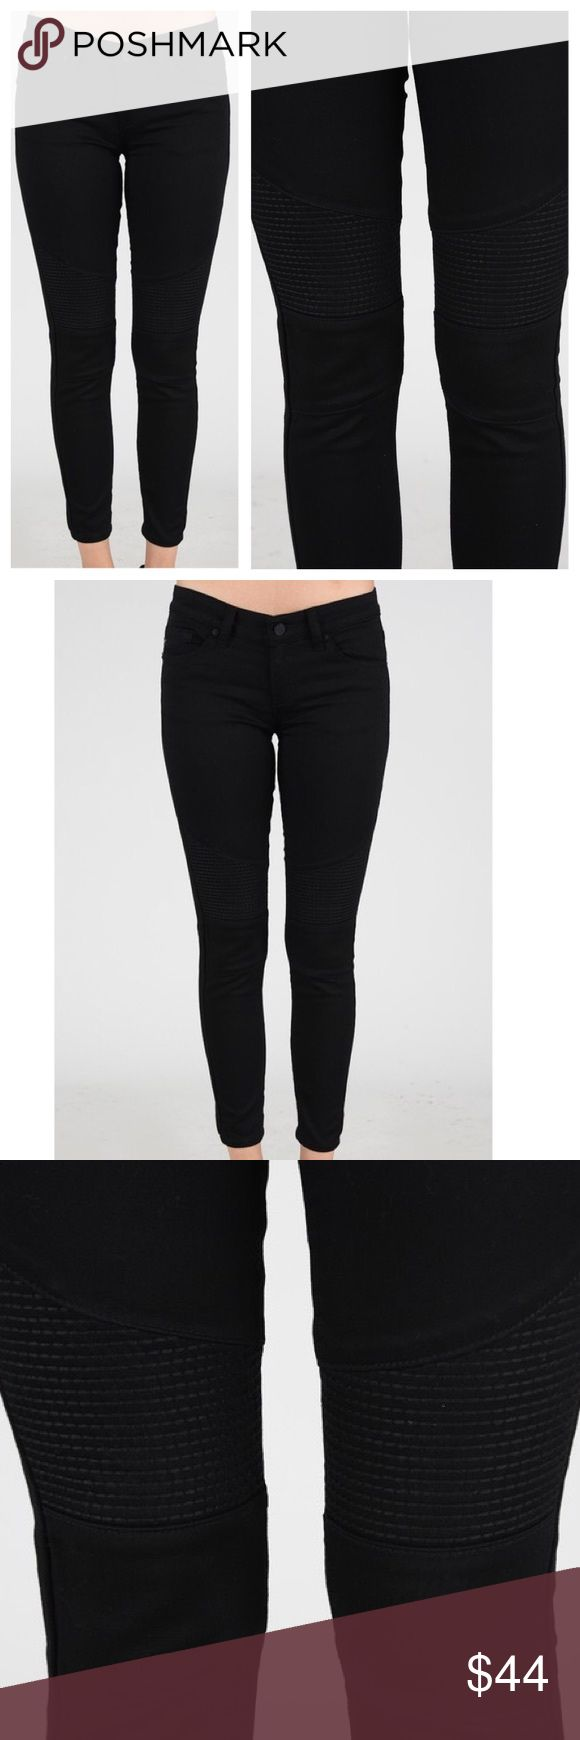 """🆕 Black Stitched Moto Pants The stitching detail on the knee, combined with the matte black hardware, make these moto pants a statement piece! They remind me of my favorite Balmain pants but at a mere fraction of the cost. Features: 5 functional pockets and are stretchy. Cotton, Polyester, Spandex. Size Zero Measures: 7.5"""" Rise, 26"""" Length. Available to ship 3/3 Jeans"""